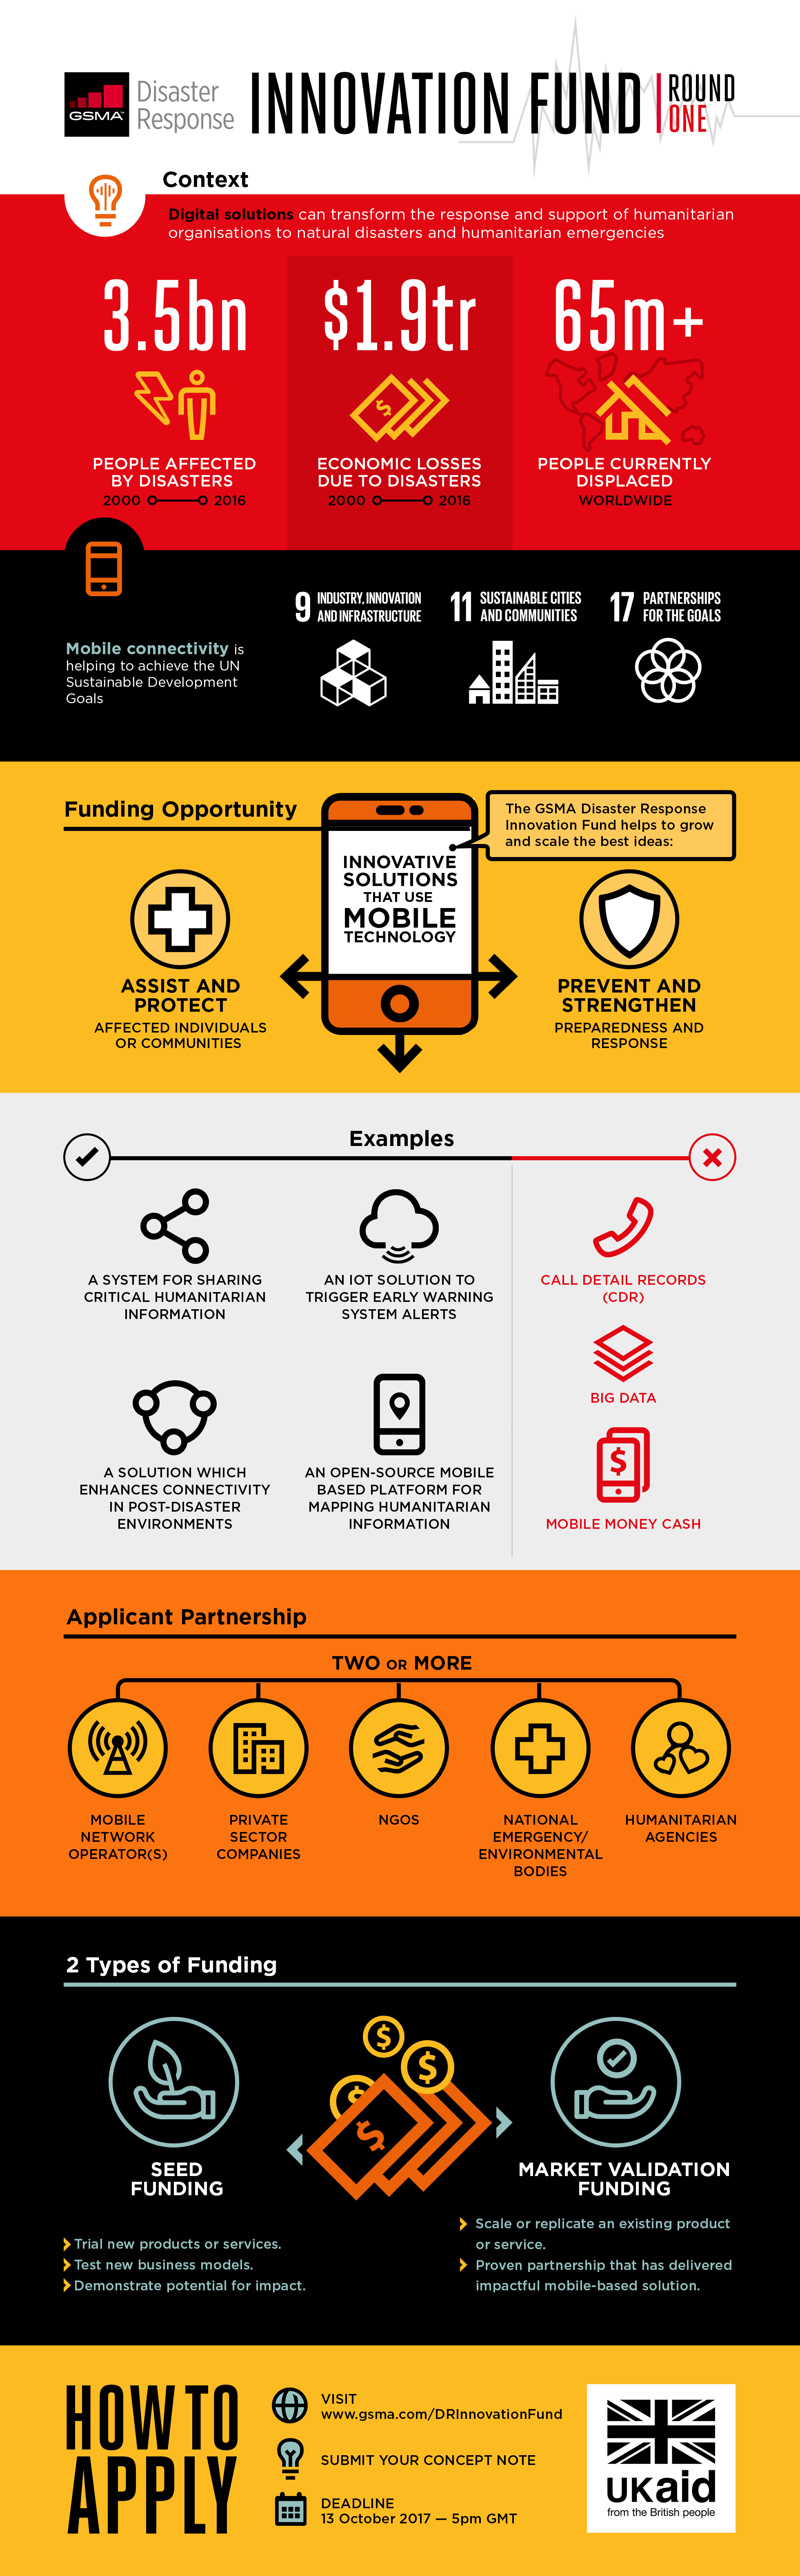 Design infographic for mobile tech in humanitarian aid